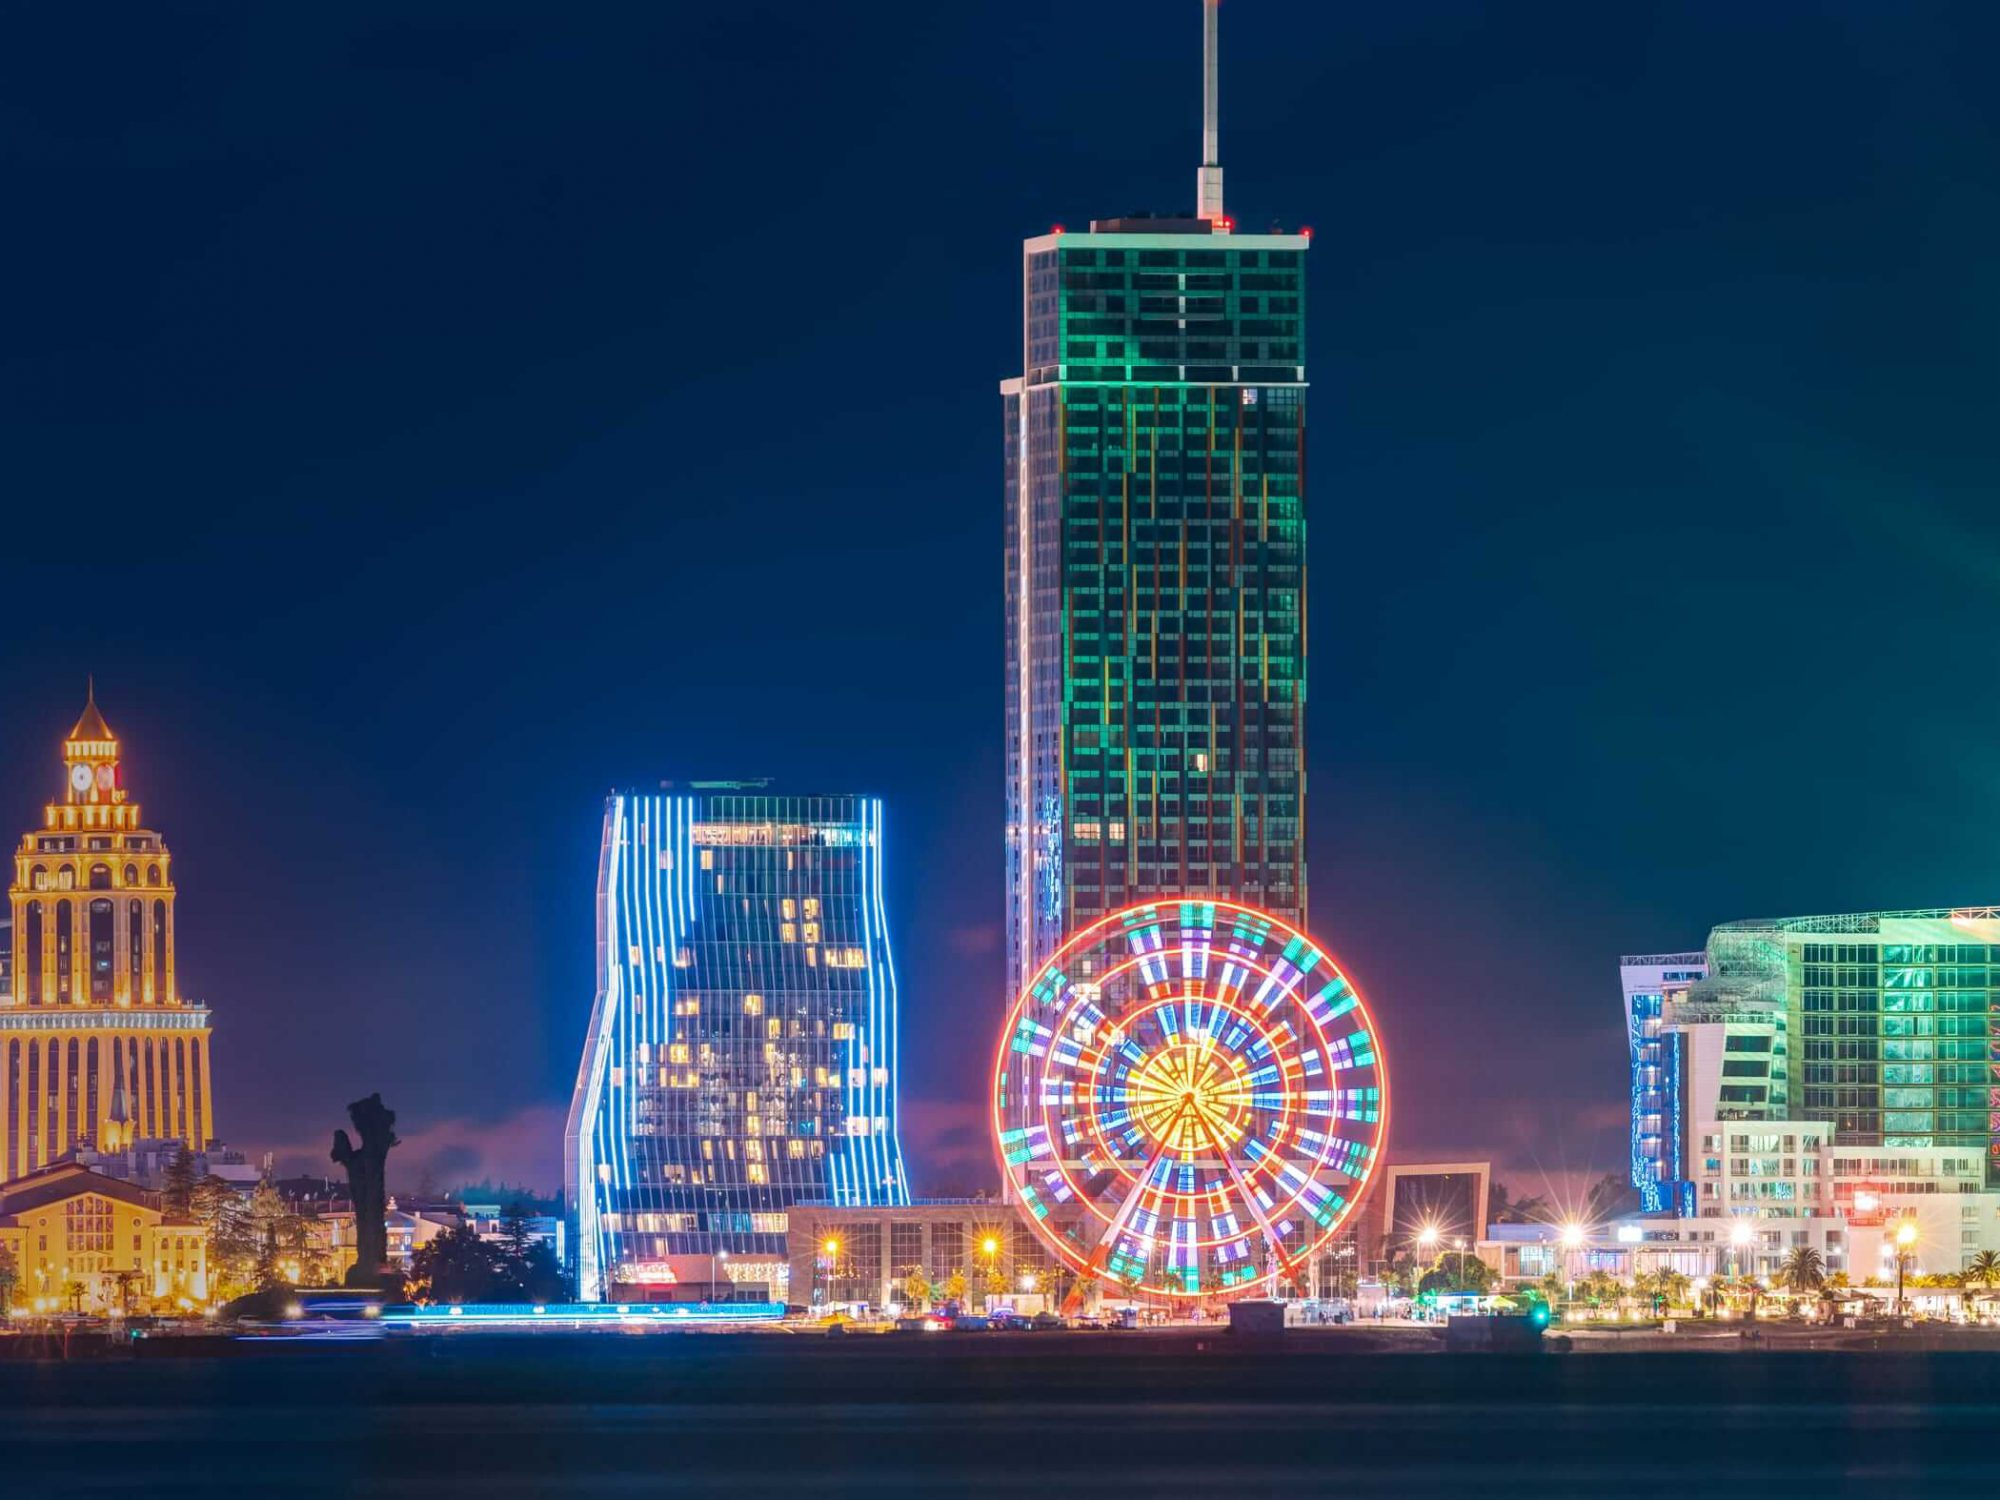 Batumi skyline at night